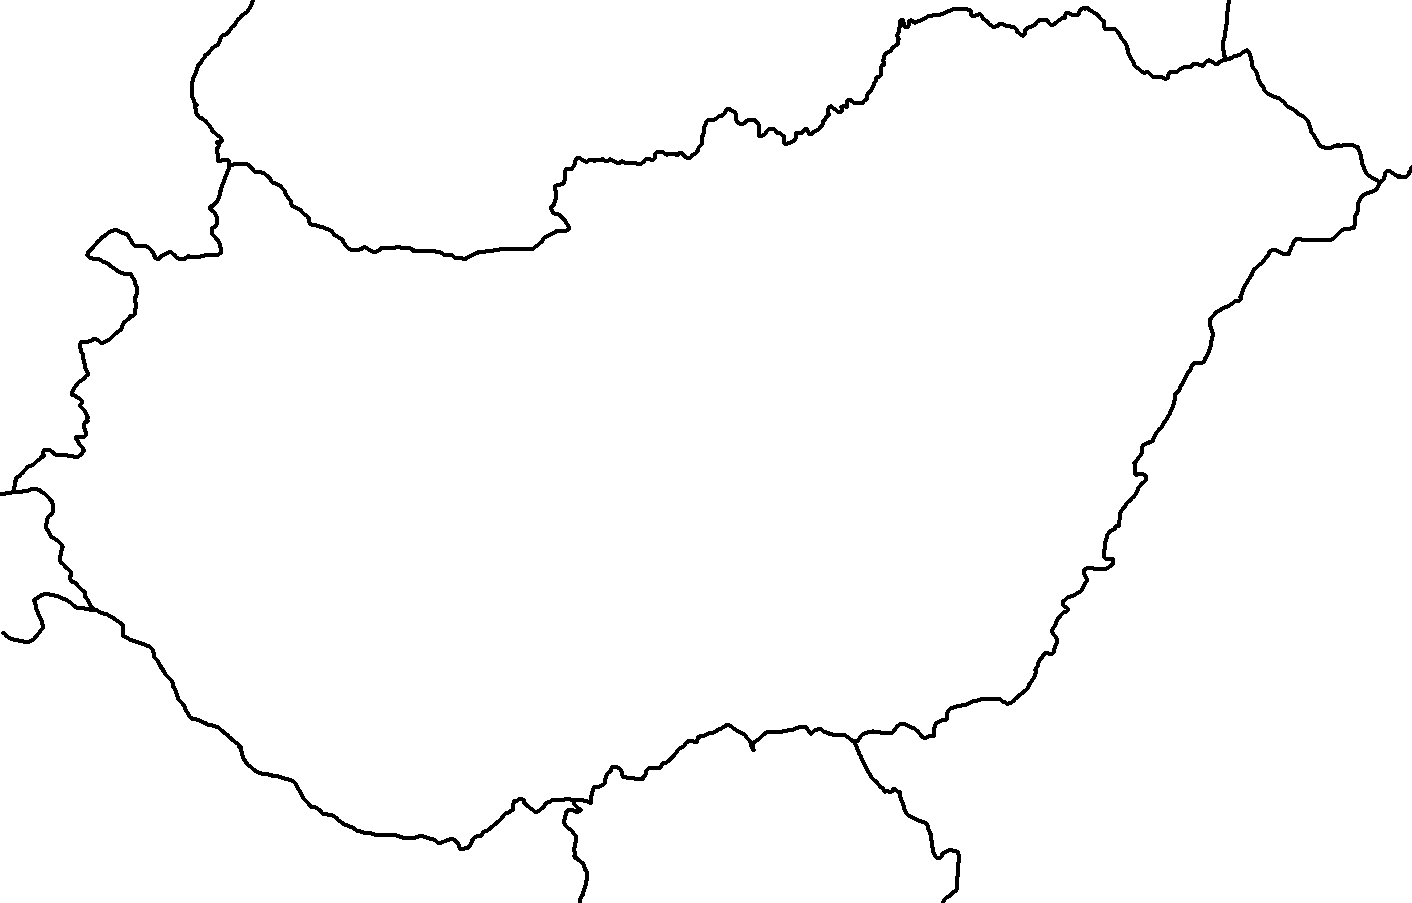 Image Blank Map Of Hungarypng TheFutureOfEuropes Wiki - Hungary blank map